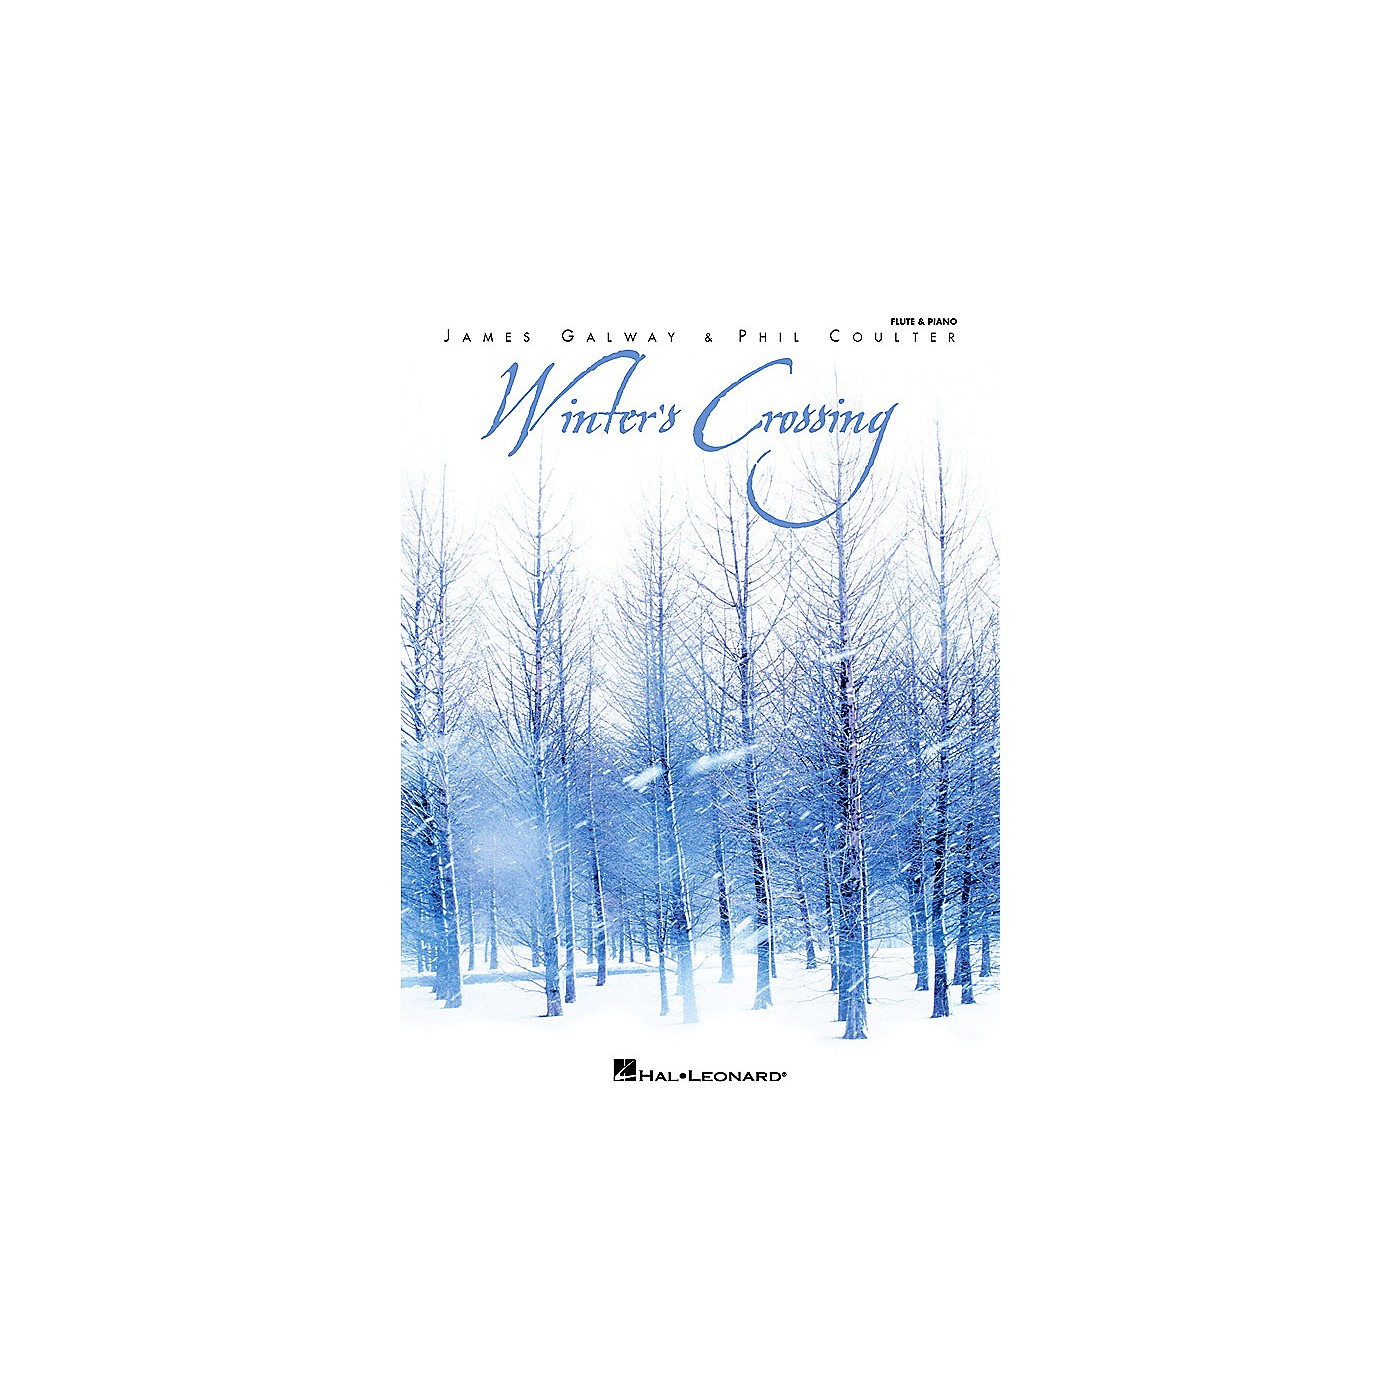 Hal Leonard Winter's Crossing - James Galway & Phil Coulter Artist Books Series Performed by James Galway thumbnail